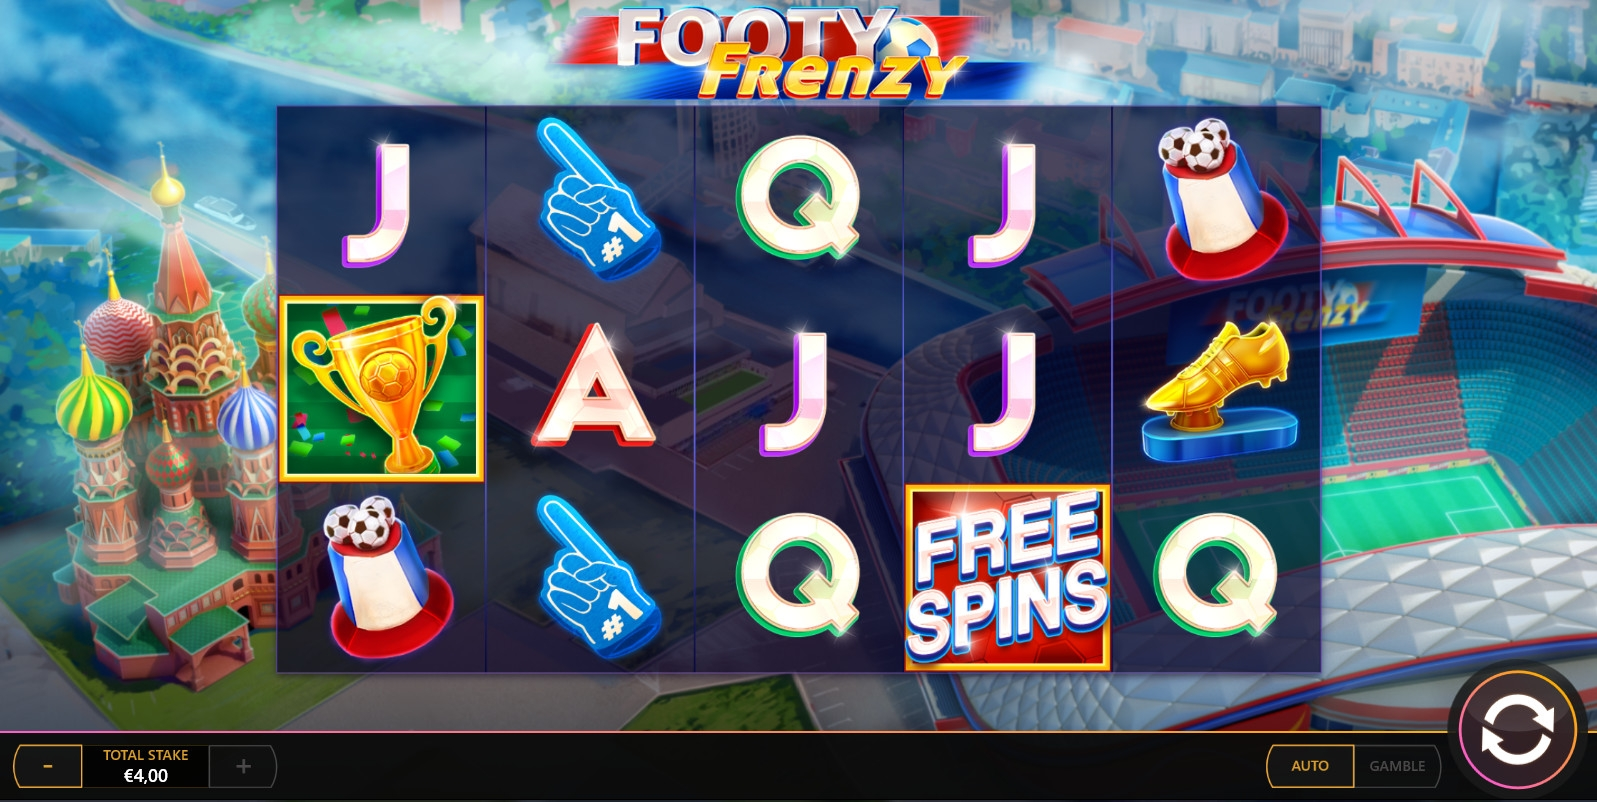 Footy Frenzy (Footy Frenzy) from category Slots